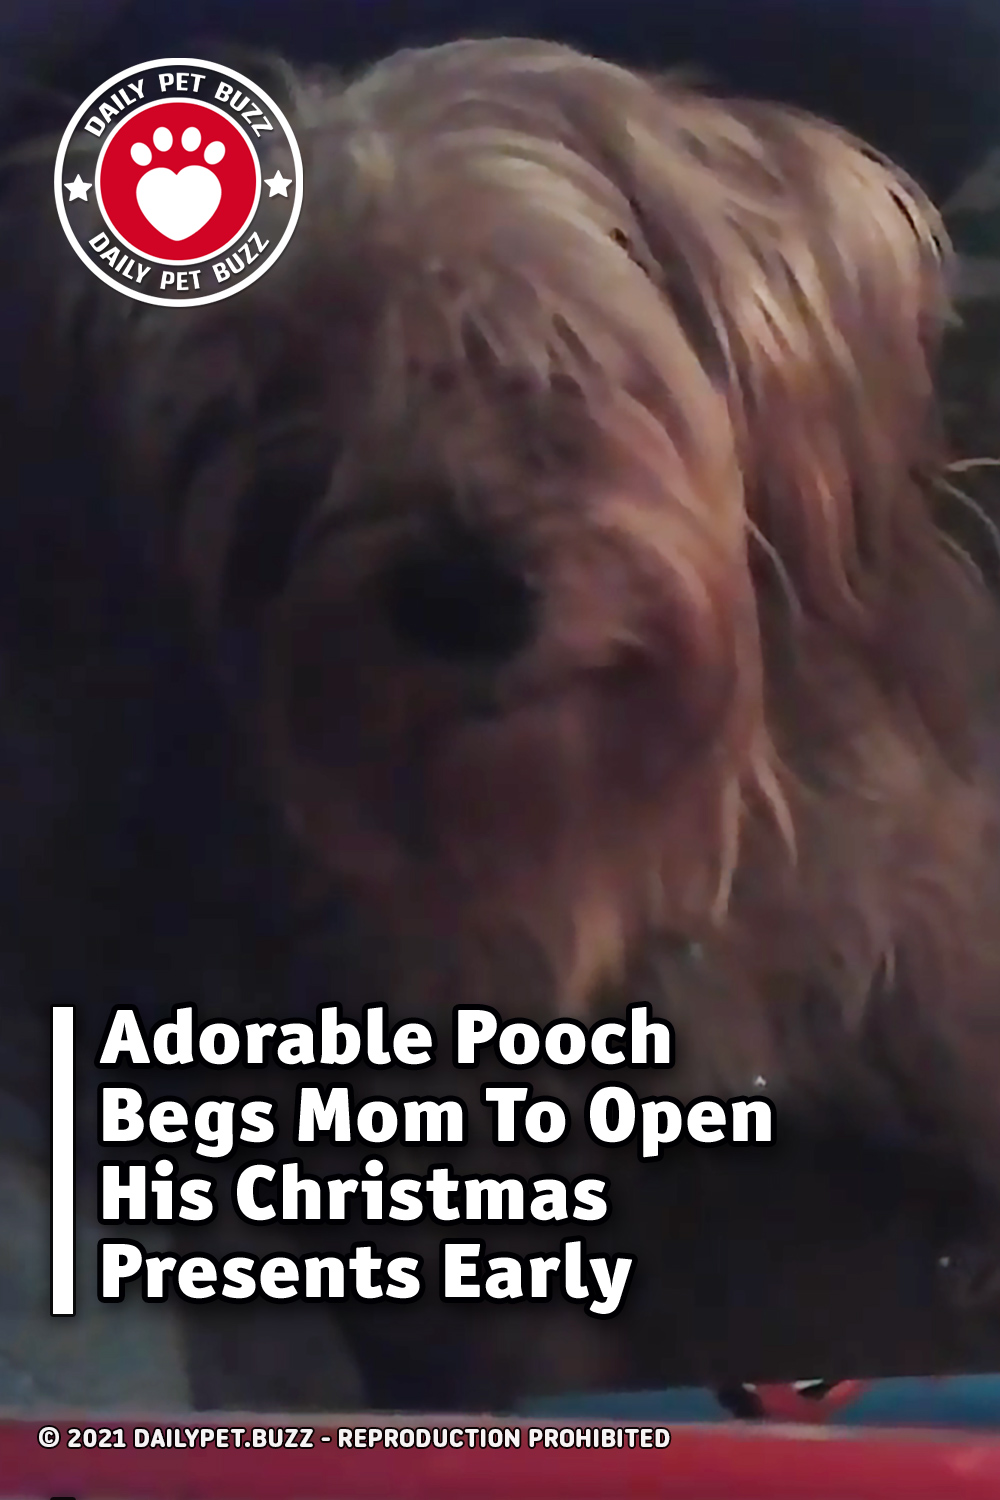 Adorable Pooch Begs Mom To Open His Christmas Presents Early